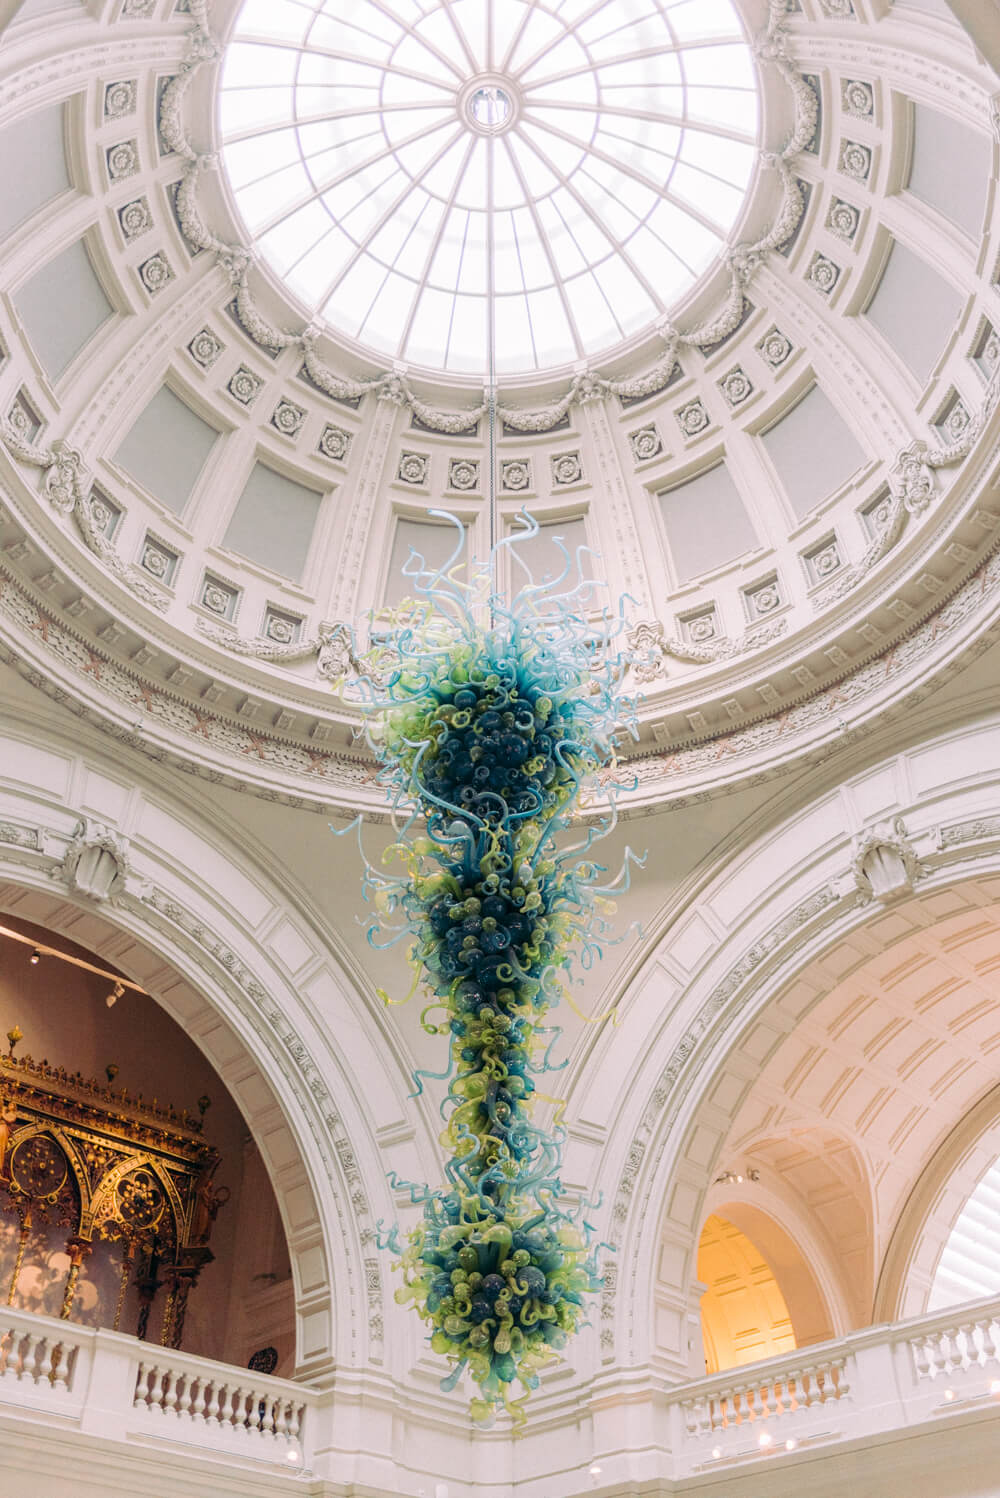 Light-filled dome with glass installation at the Victoria and Albert V&A museum entrance and reception foyer - Photo by Cristina Ilao